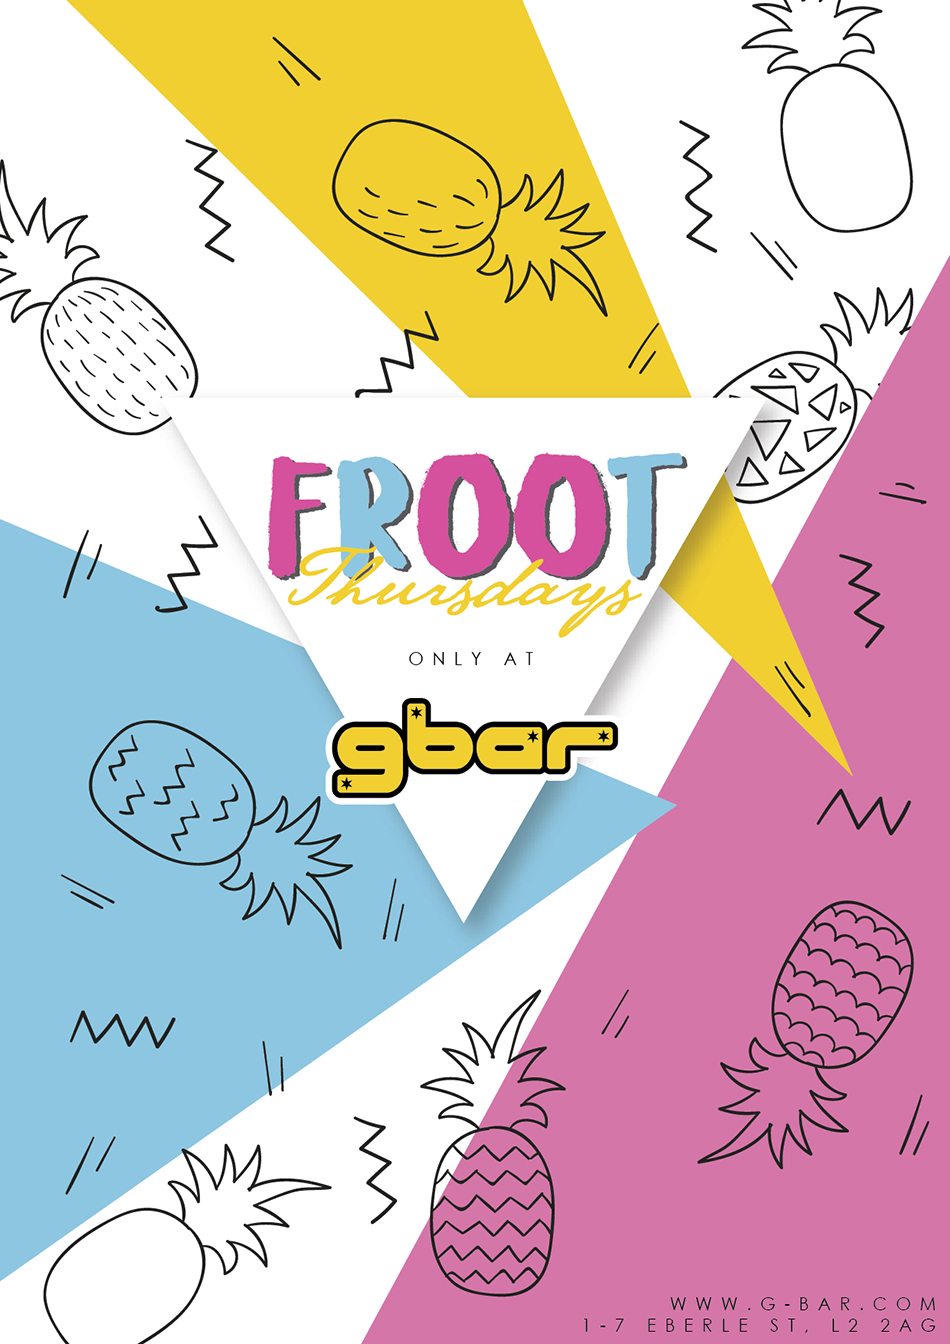 FROOT Comes To GBar!